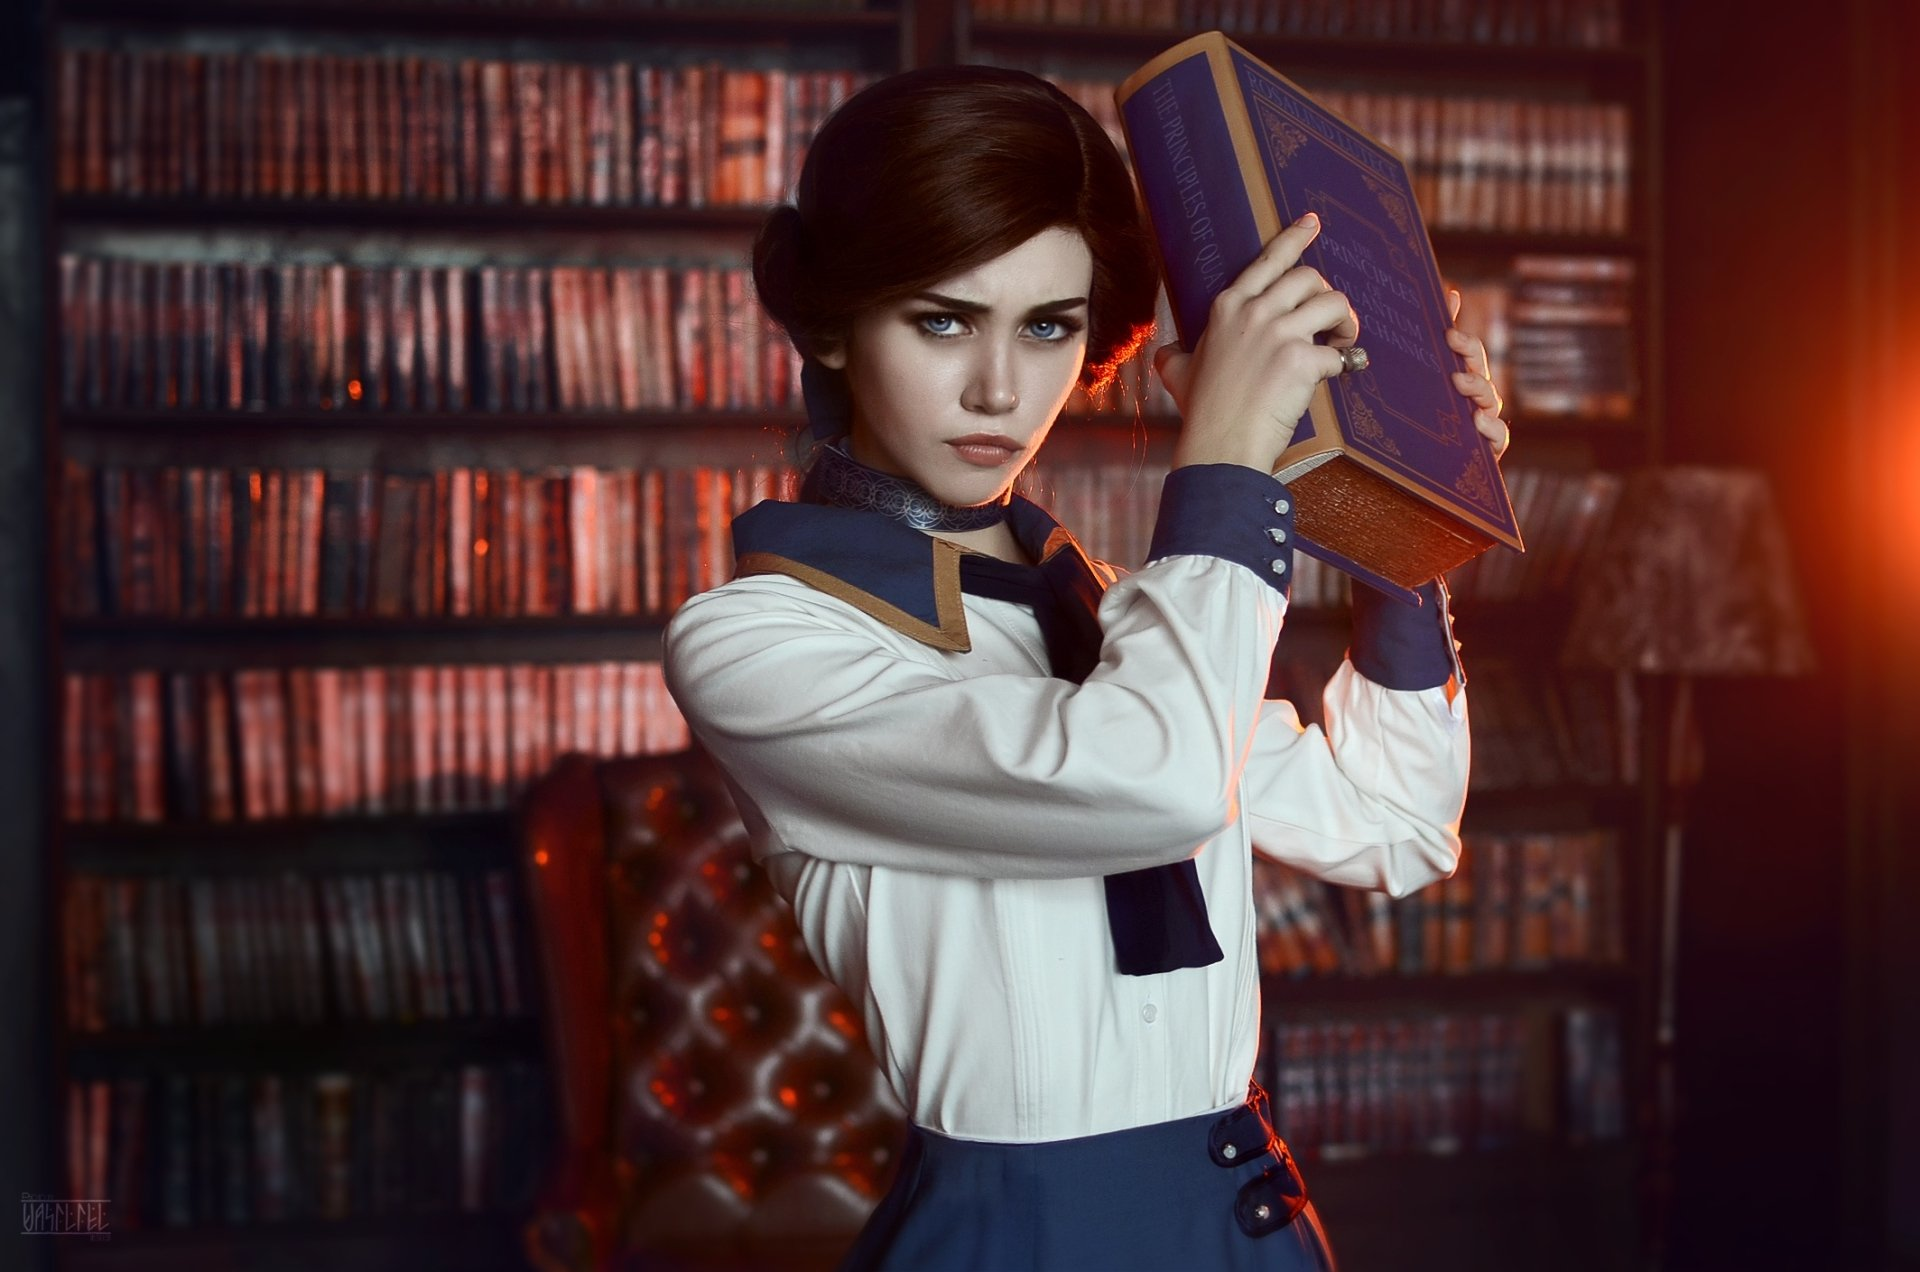 Women - Cosplay  Blue Eyes Bioshock Infinite Elizabeth (Bioshock Infinite) Brunette Book Wallpaper